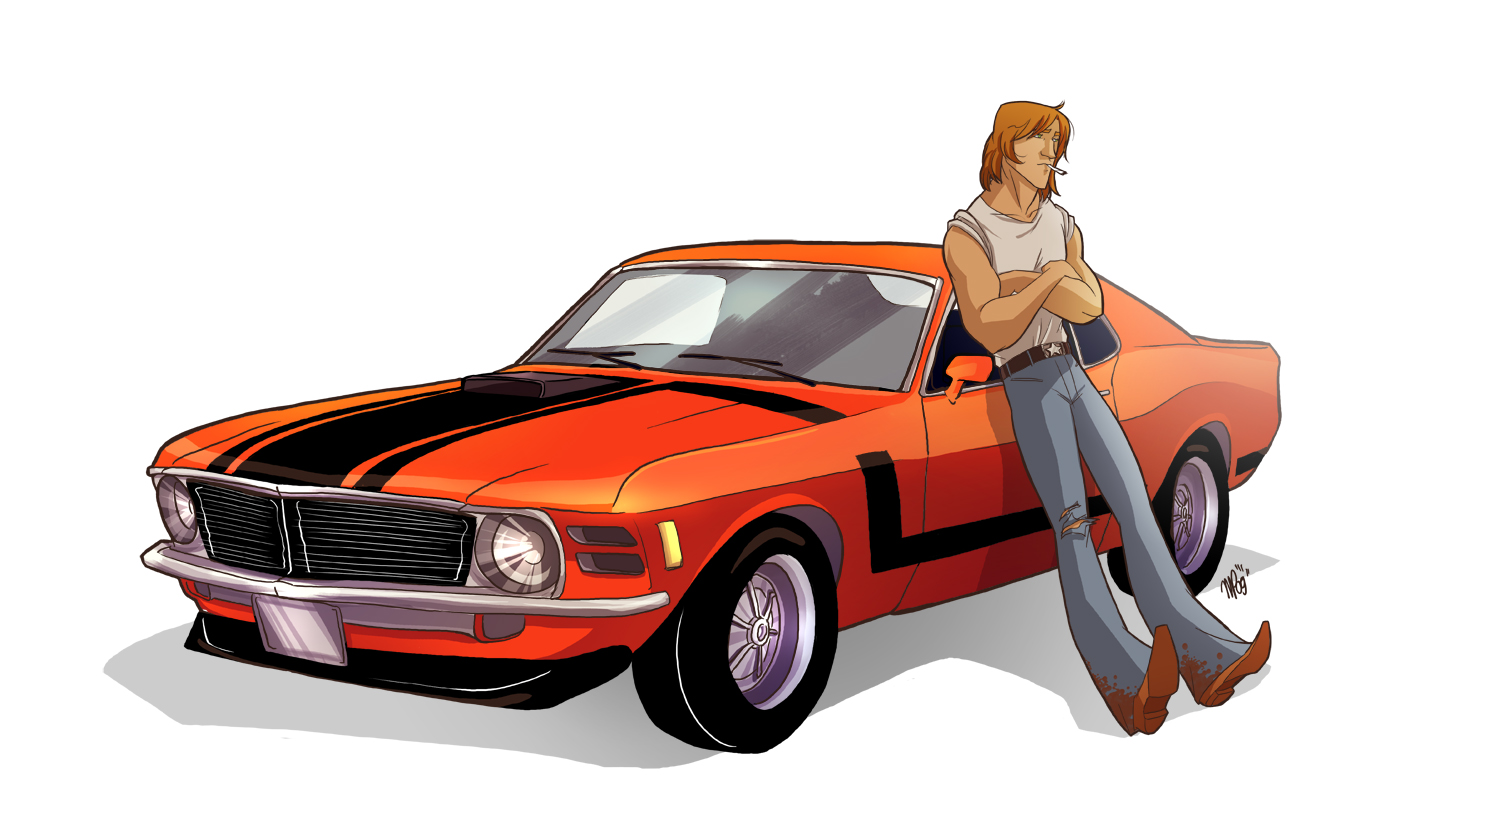 my cool car by mpdigitalart on deviantart organize small bedroom ideas my with organizing a cool